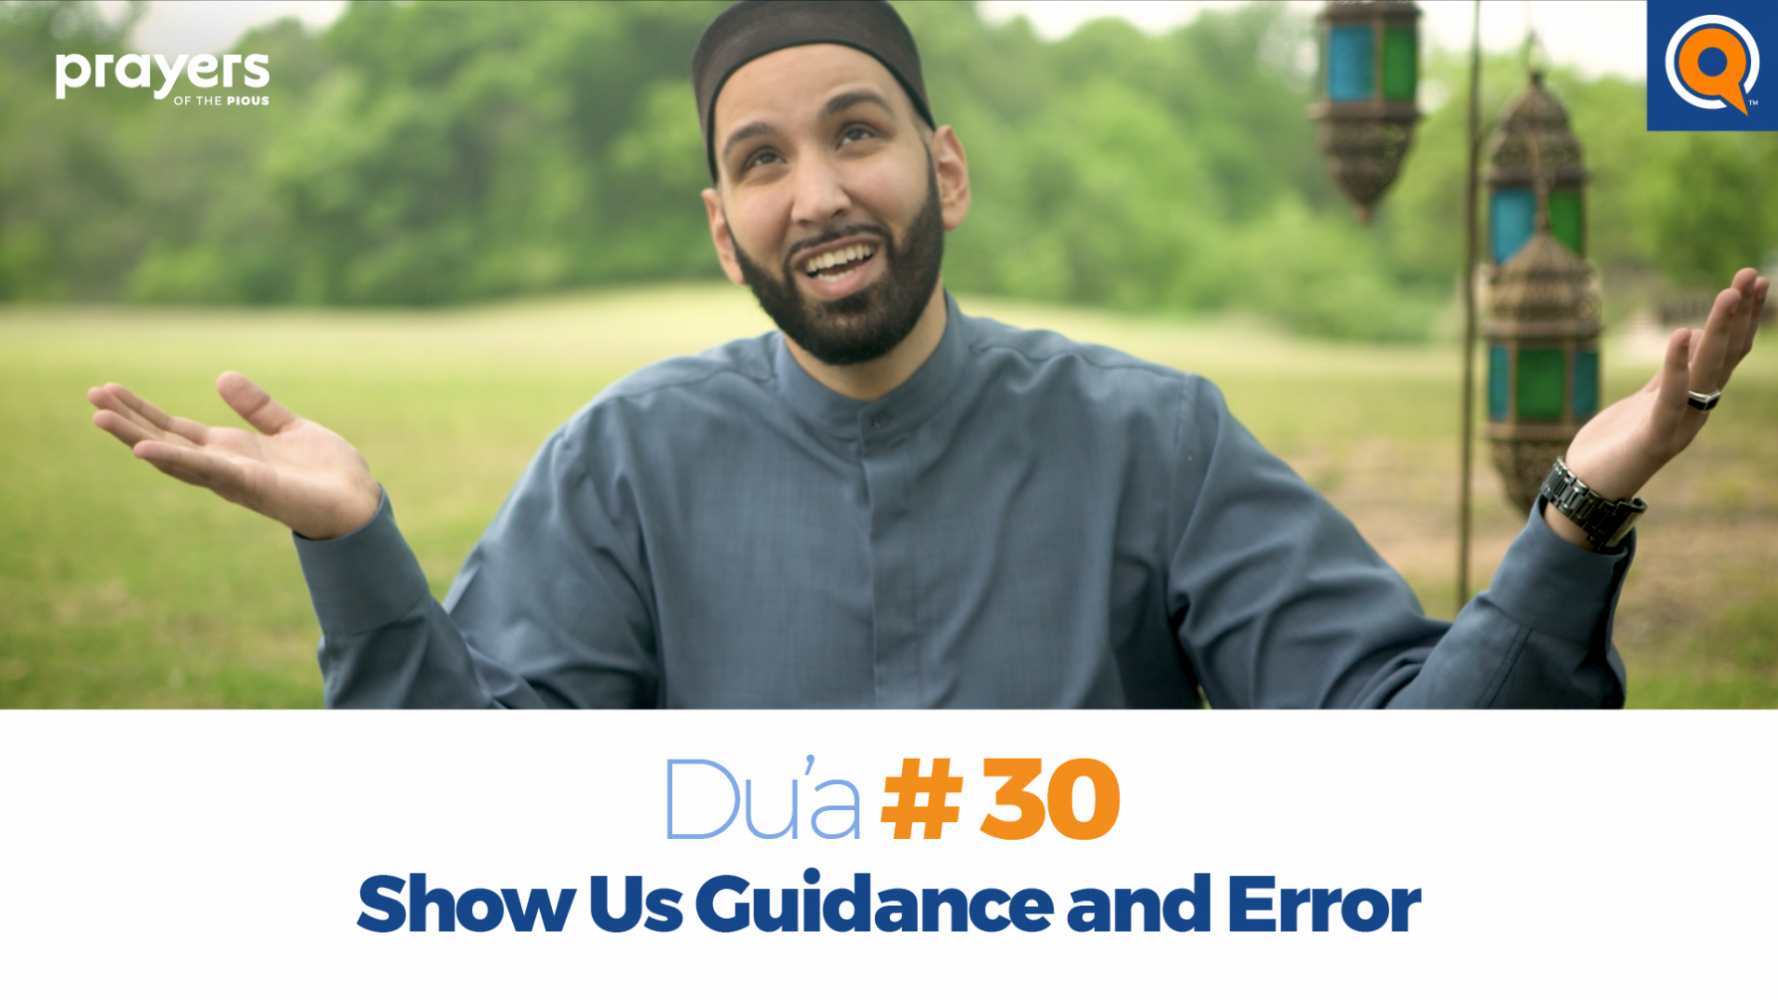 Episode 30: Show Us Guidance and Error | Prayers of the Pious